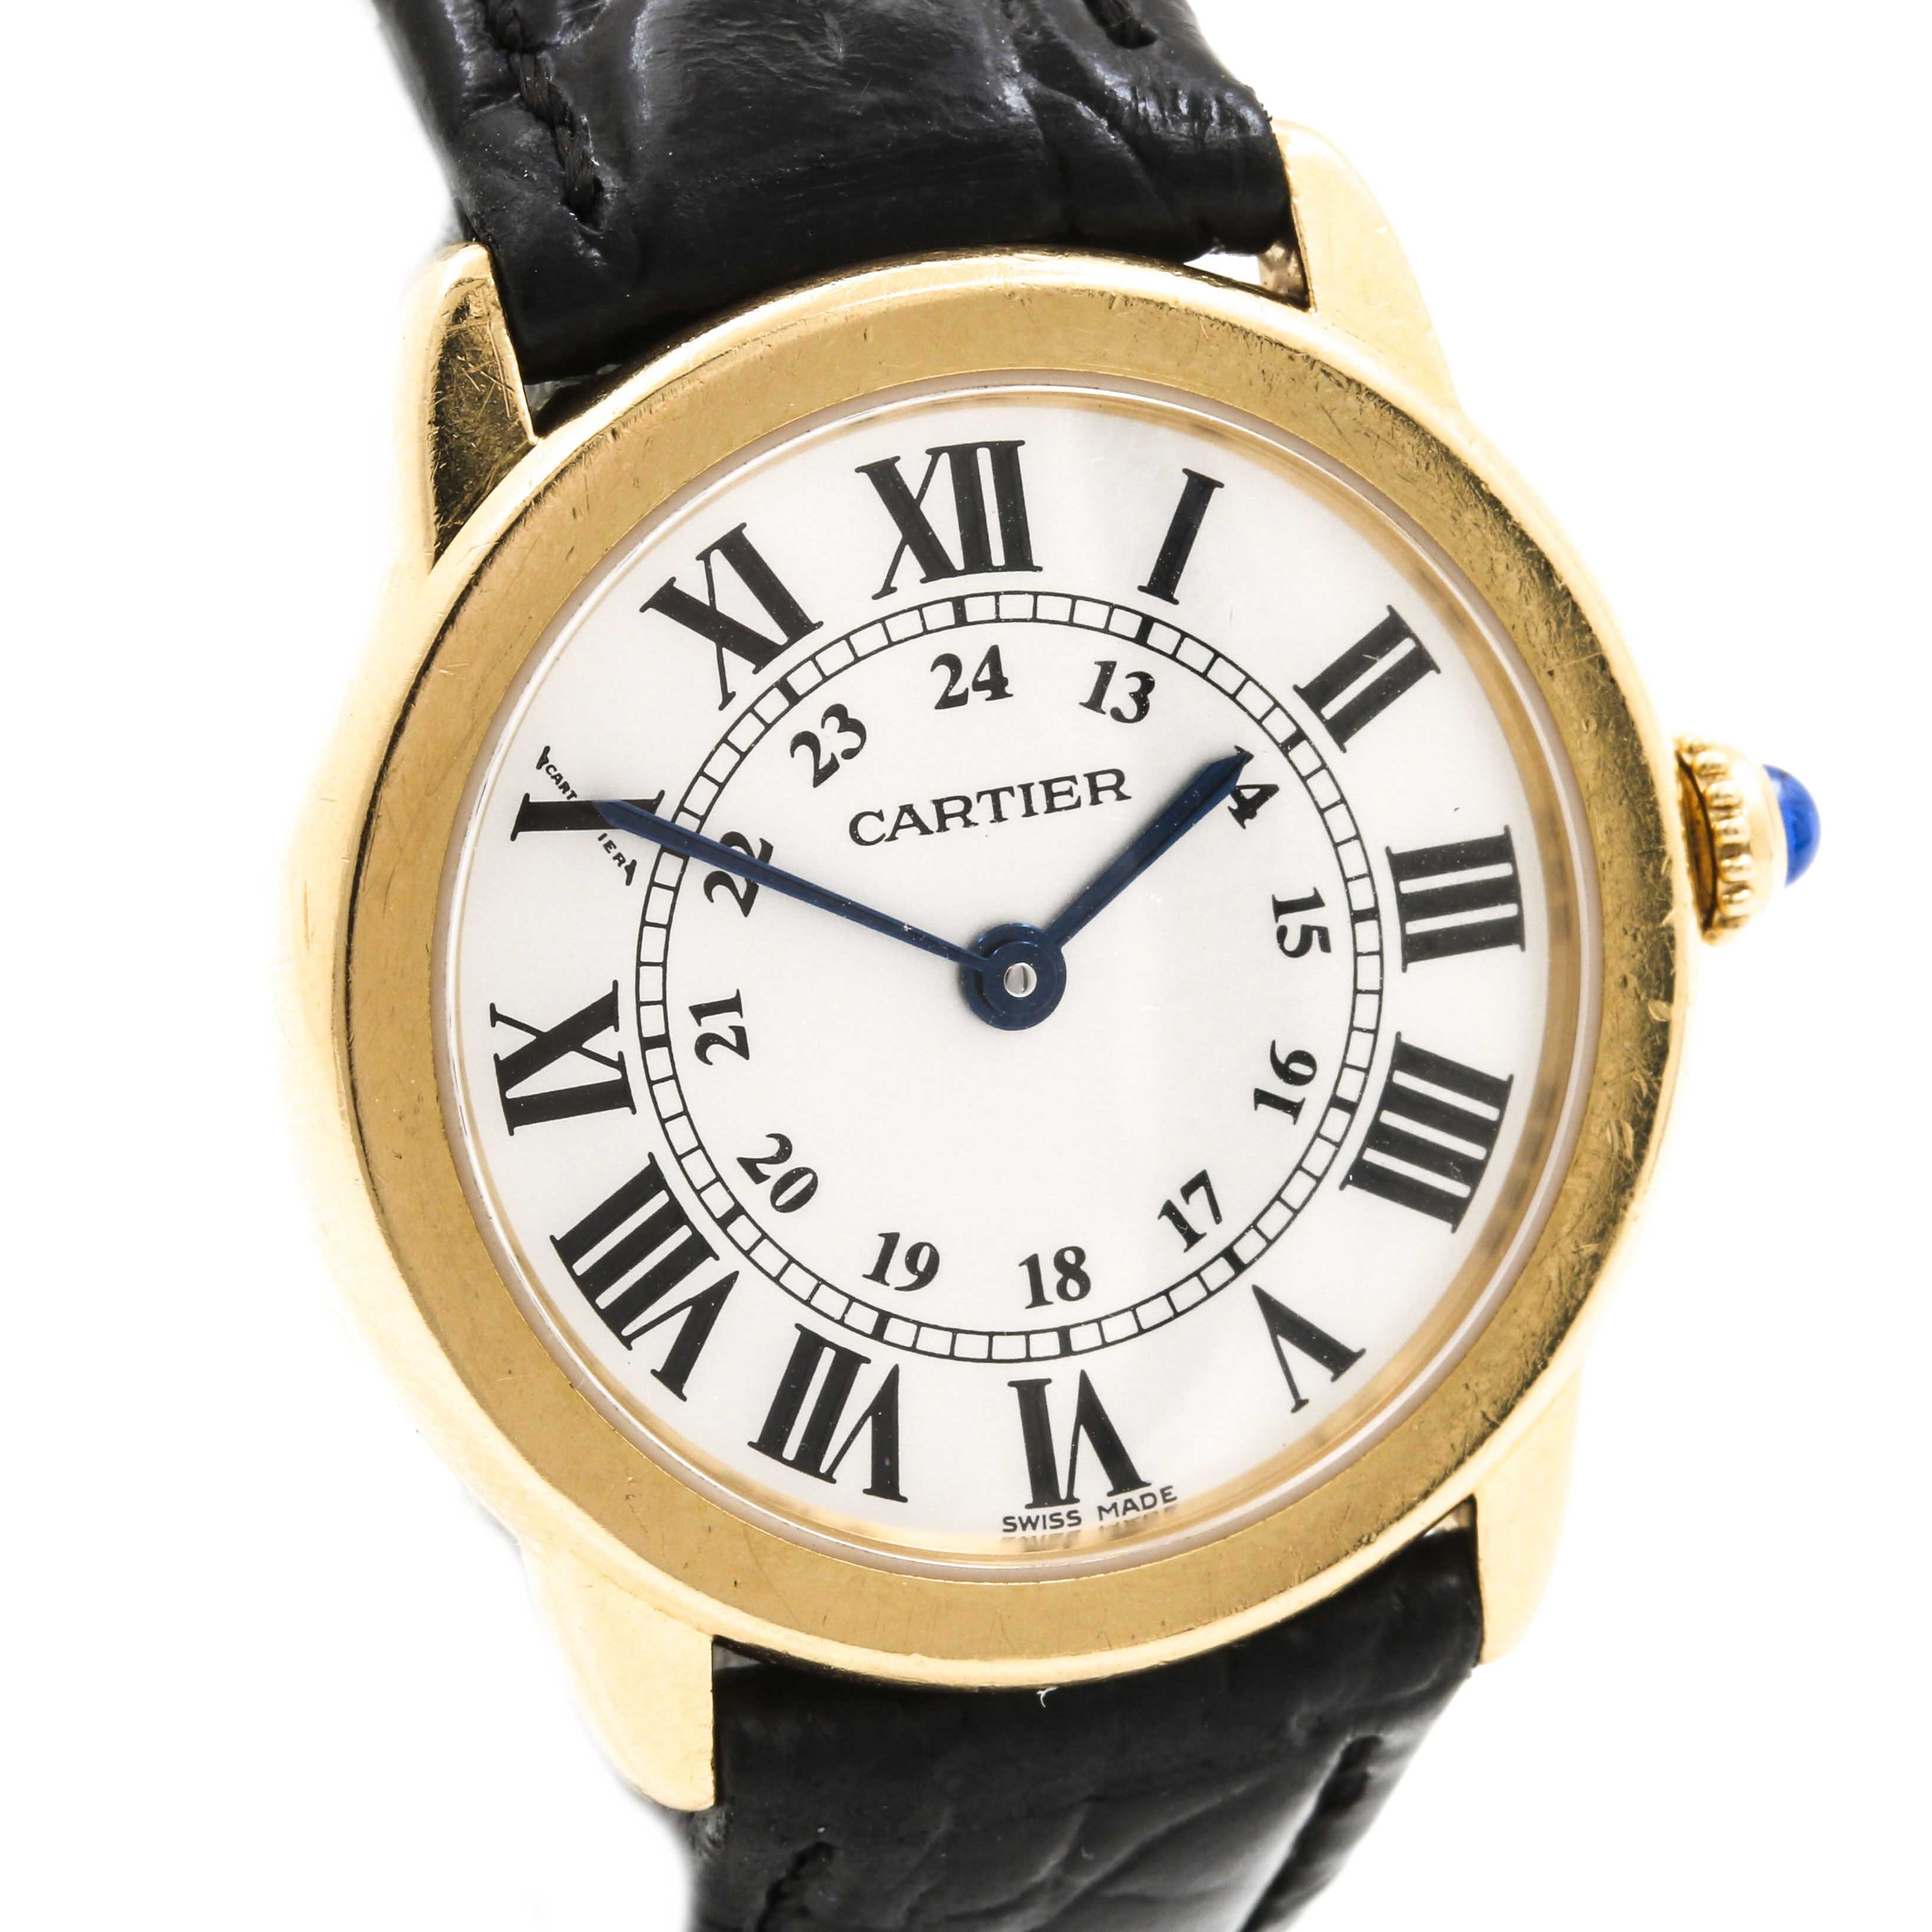 Cartier 18K Yellow Gold and Stainless Steel Analog Wristwatch